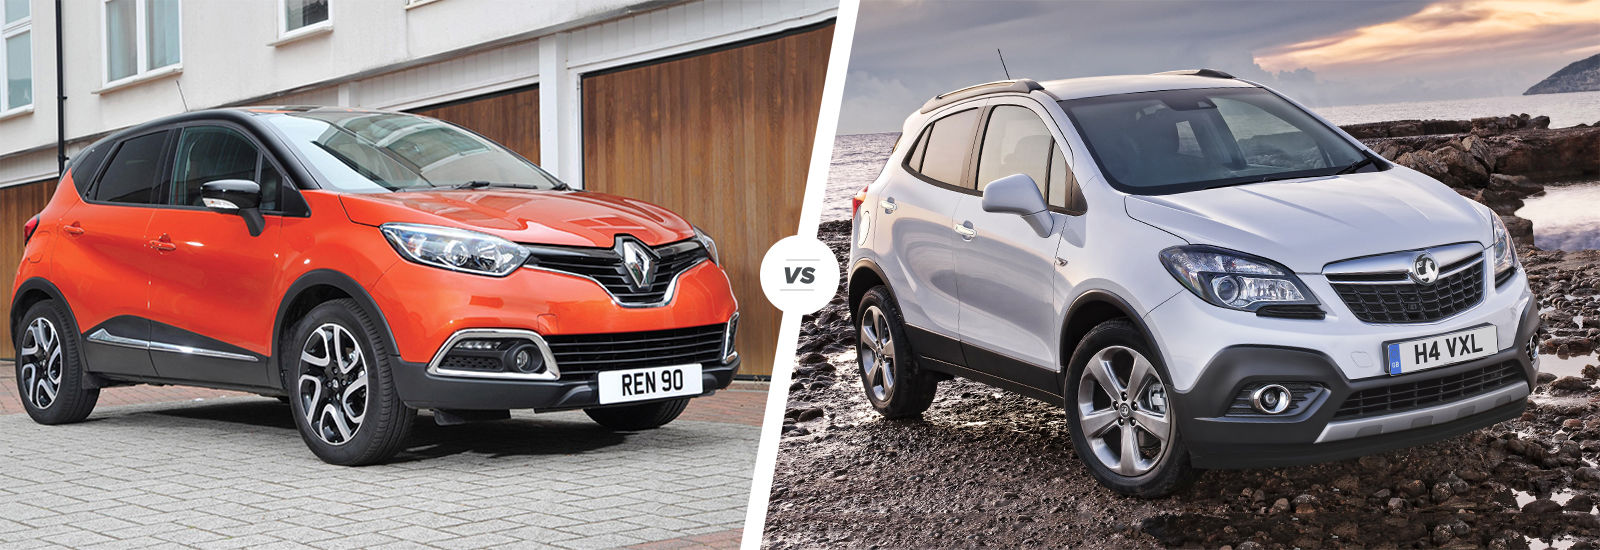 renault captur vs vauxhall mokka: suvs compared | carwow